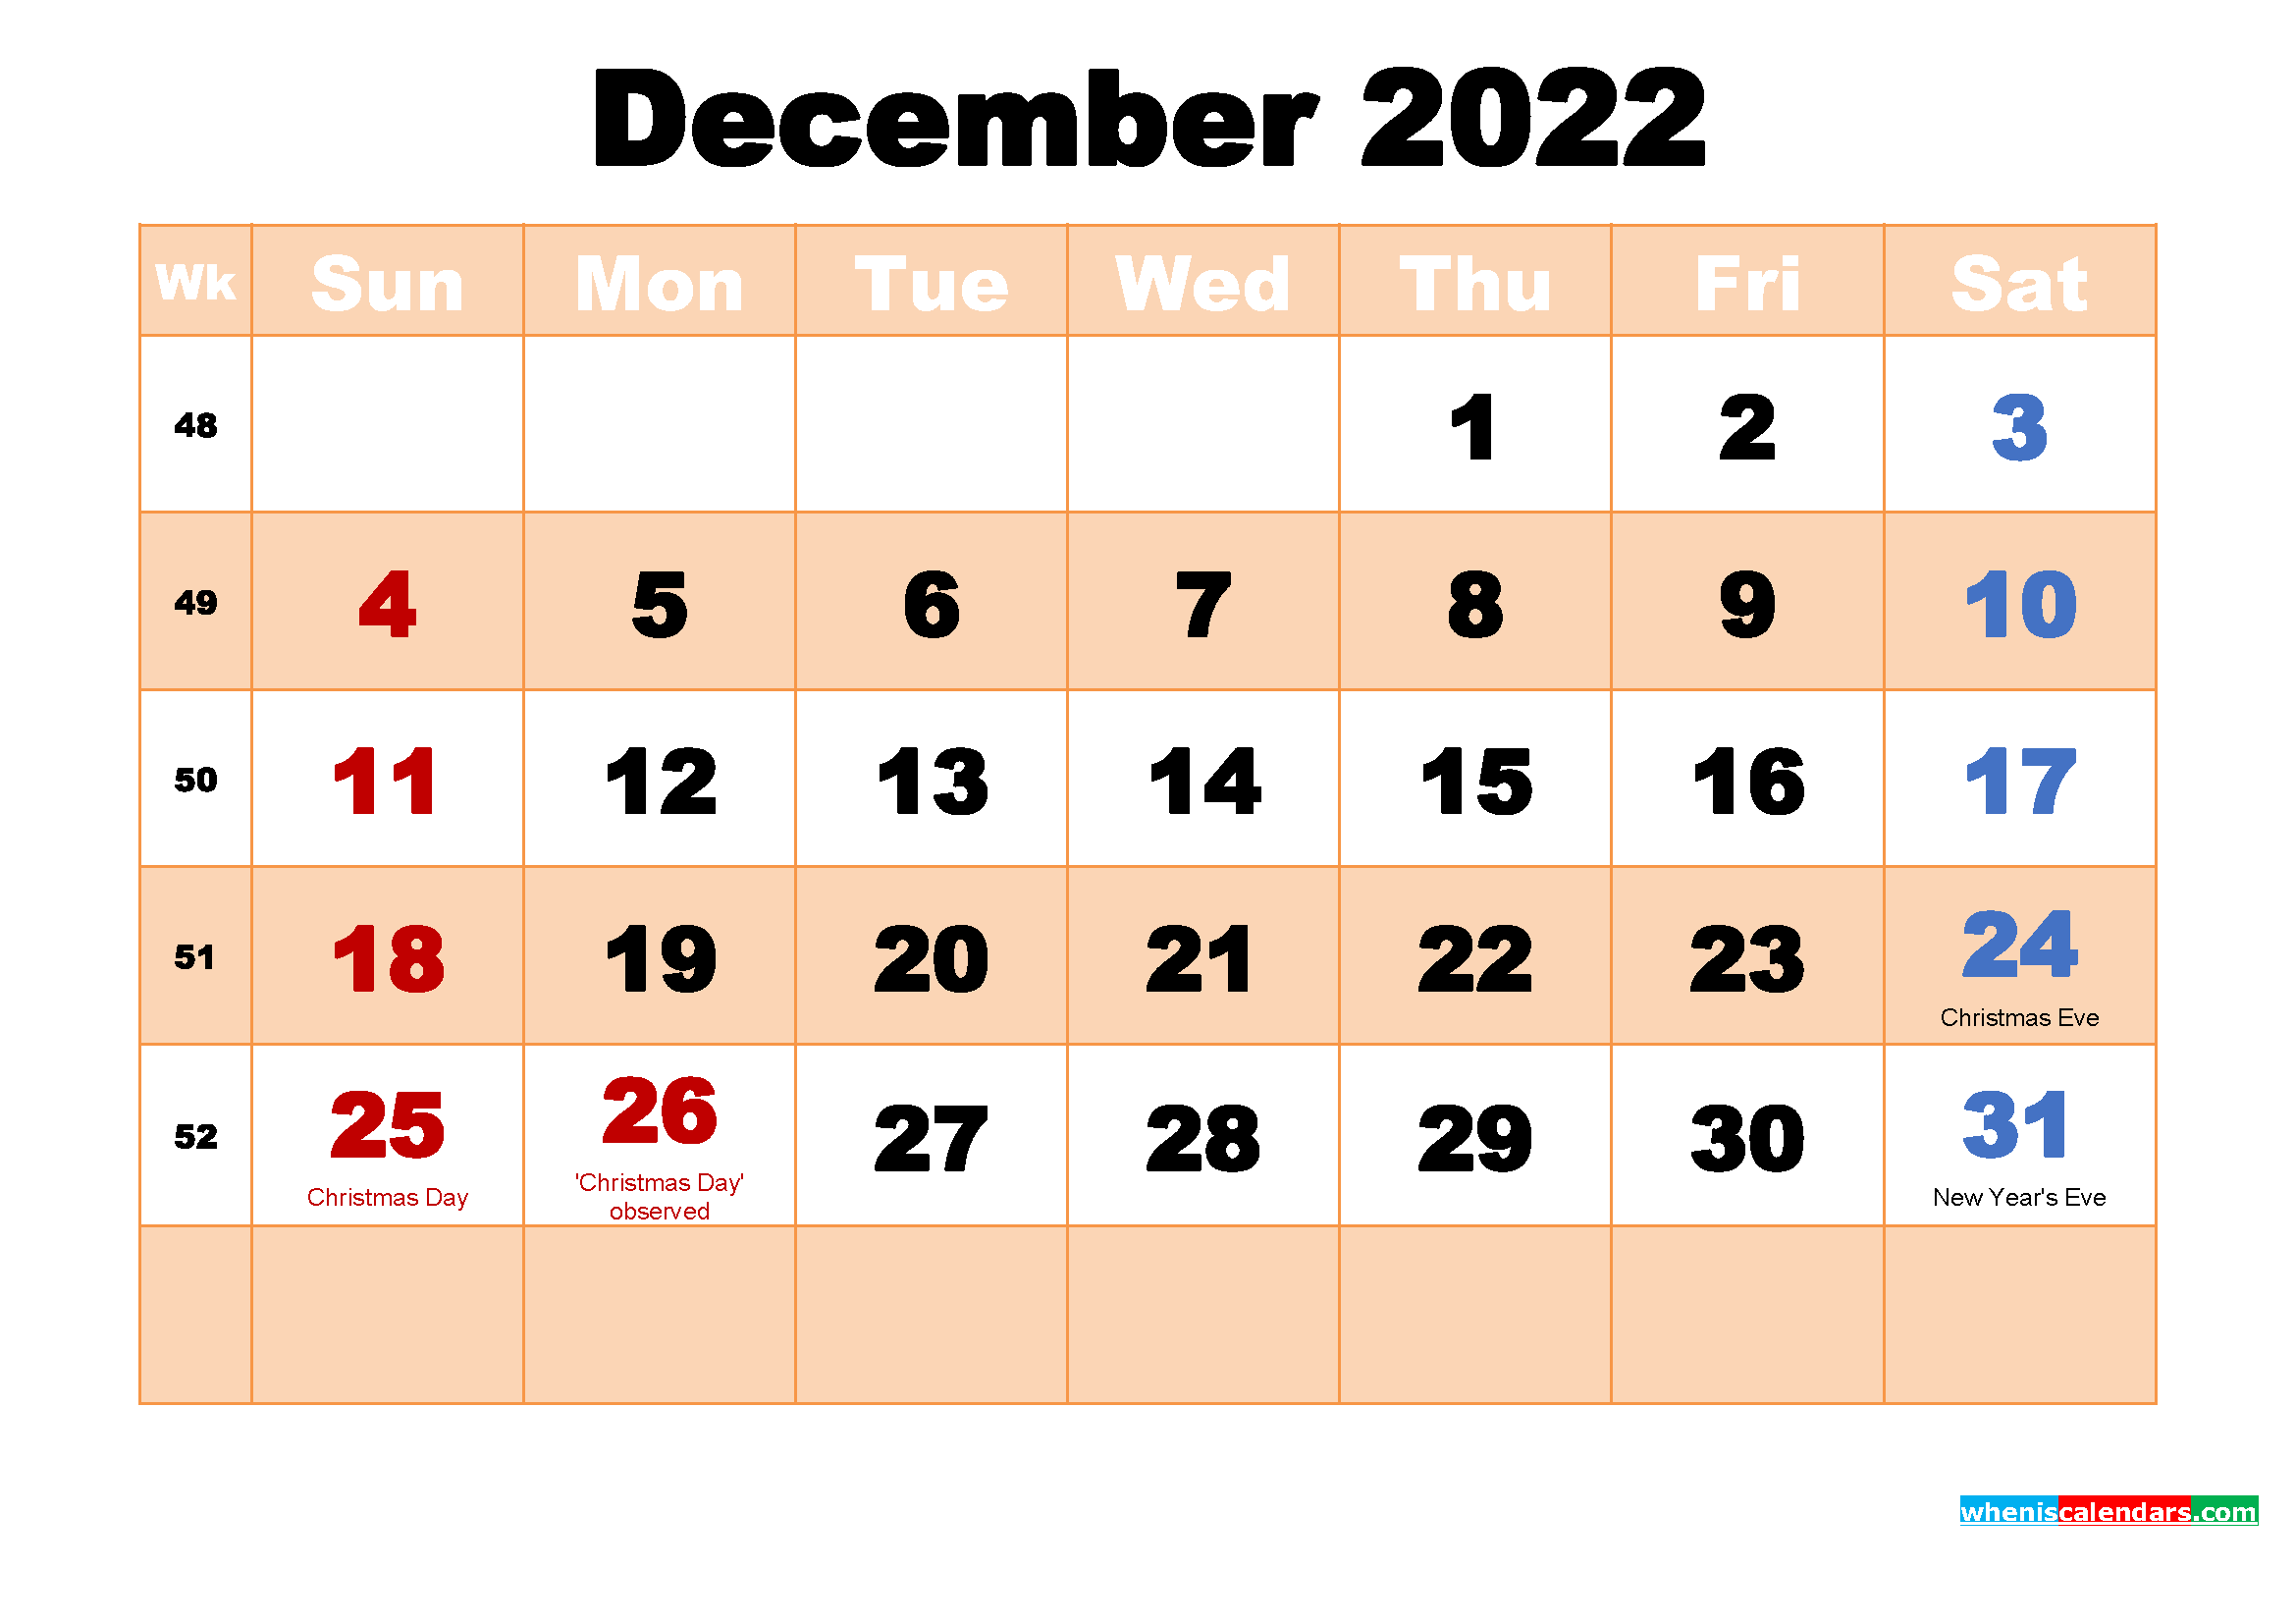 December 2022 Calendar with Holidays Wallpaper